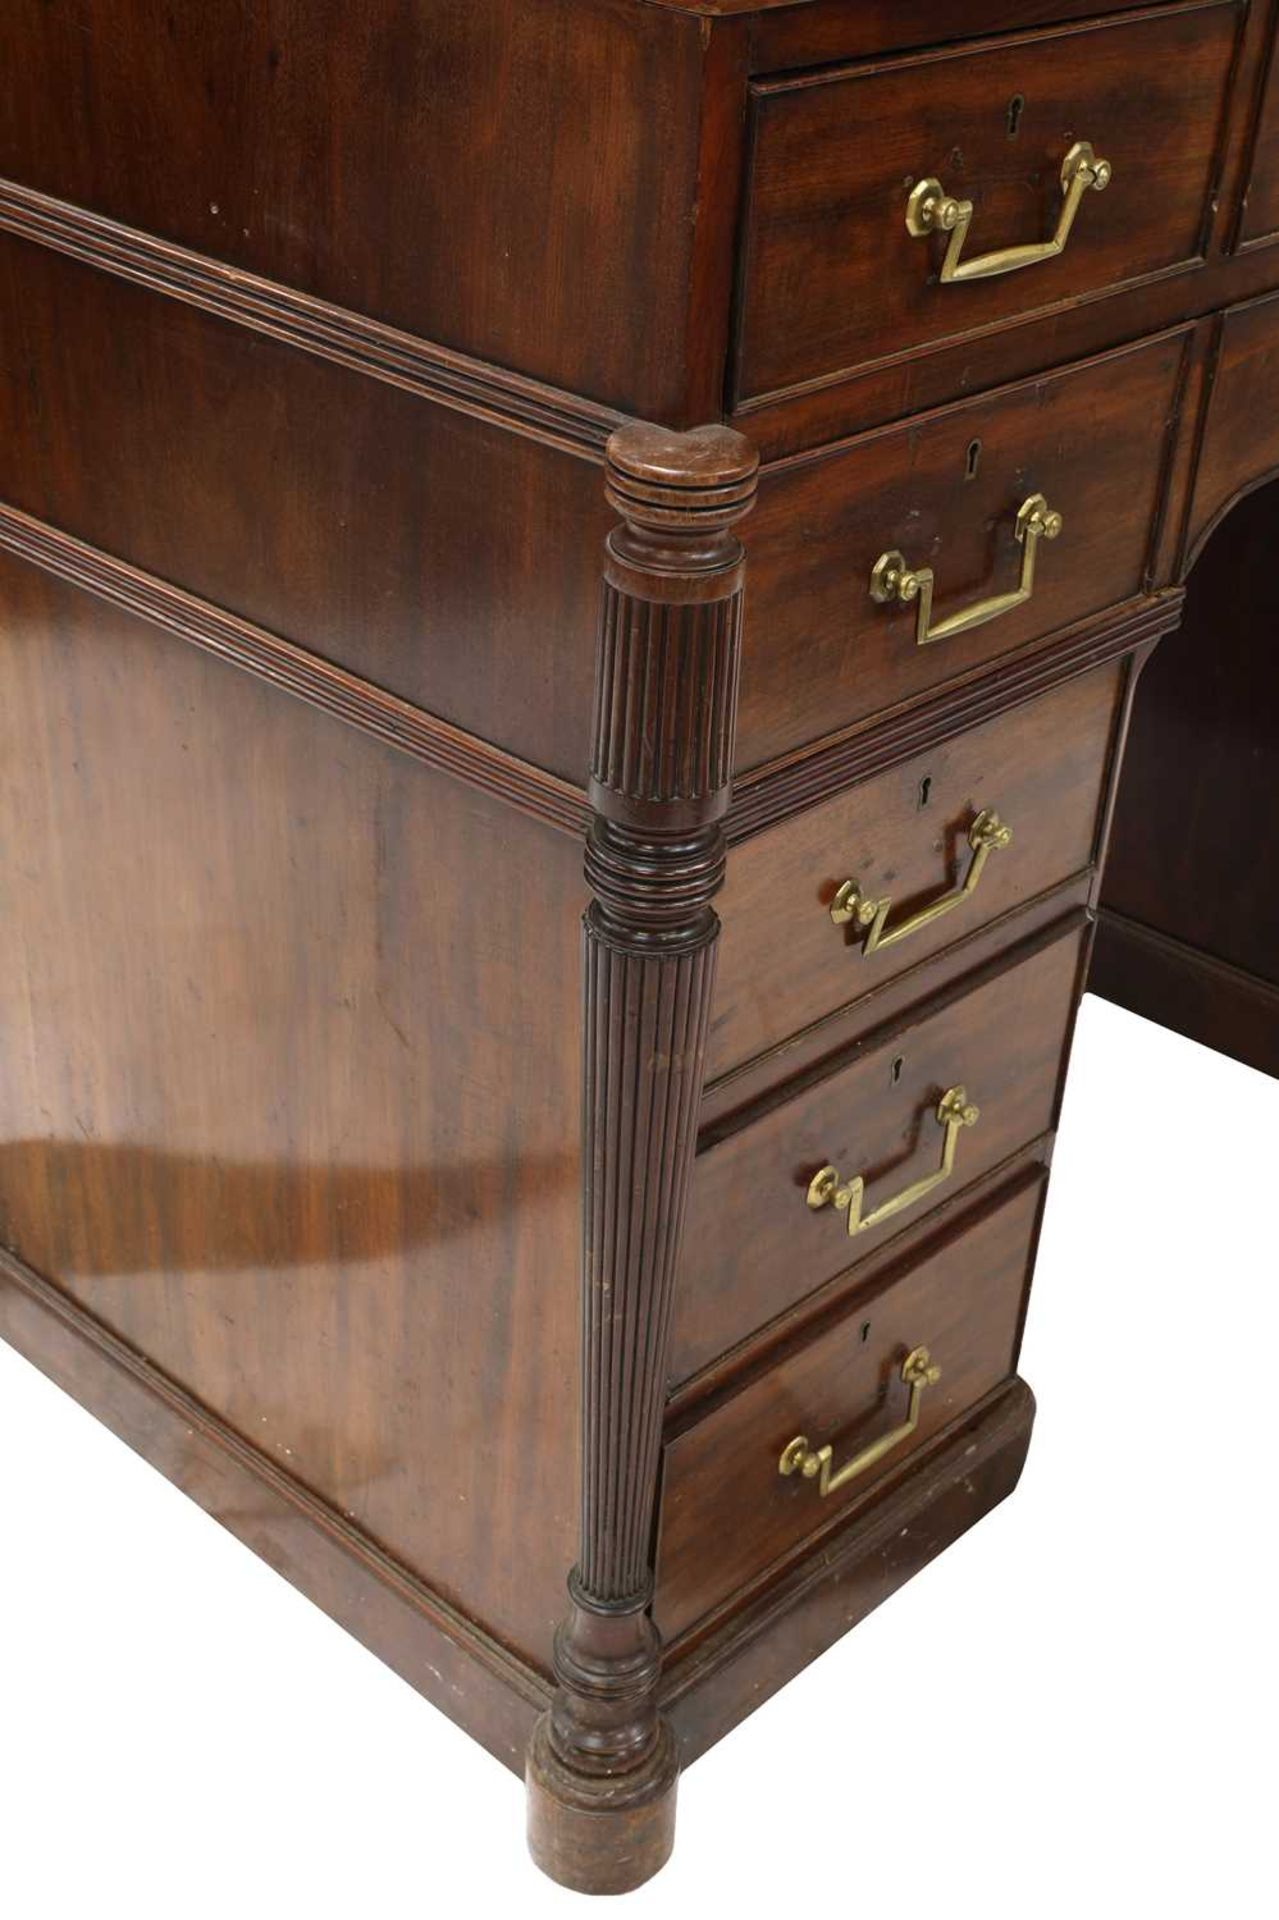 A George III mahogany architect's desk/secretaire, - Image 6 of 30